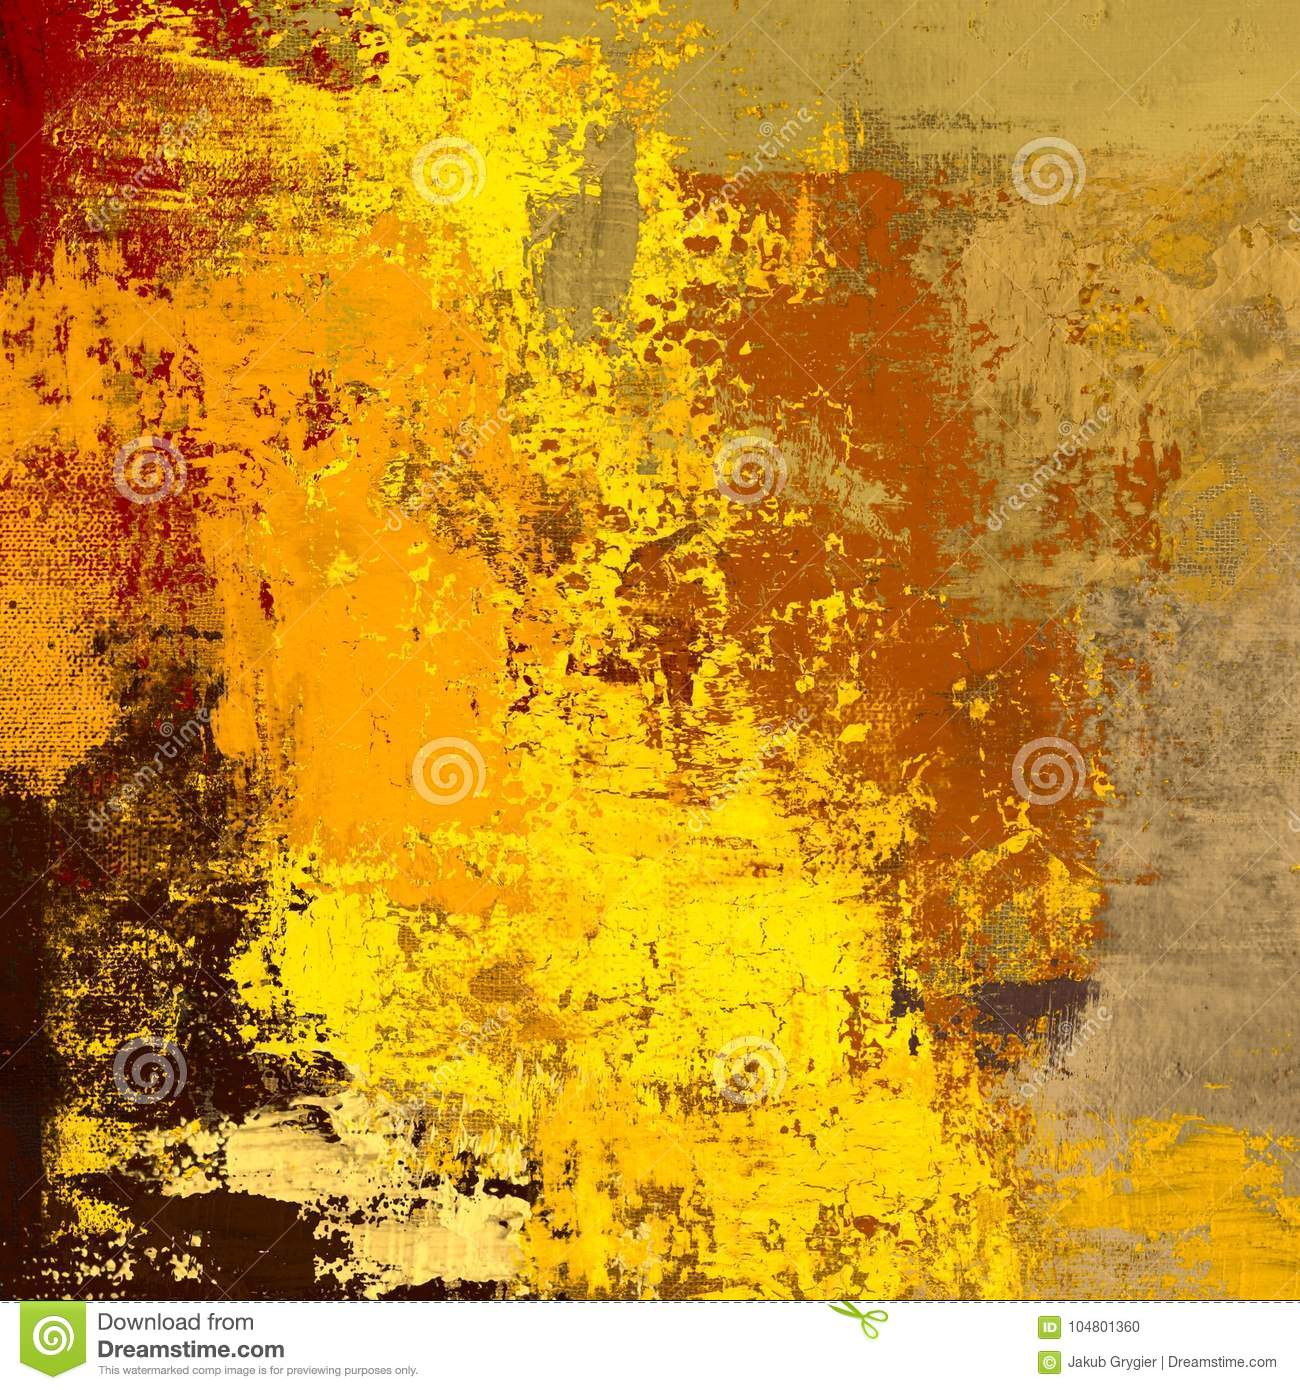 Oil painting on canvas handmade. Abstract art texture. Colorful texture. Modern artwork. Strokes of fat paint. Brushstrokes. Moder